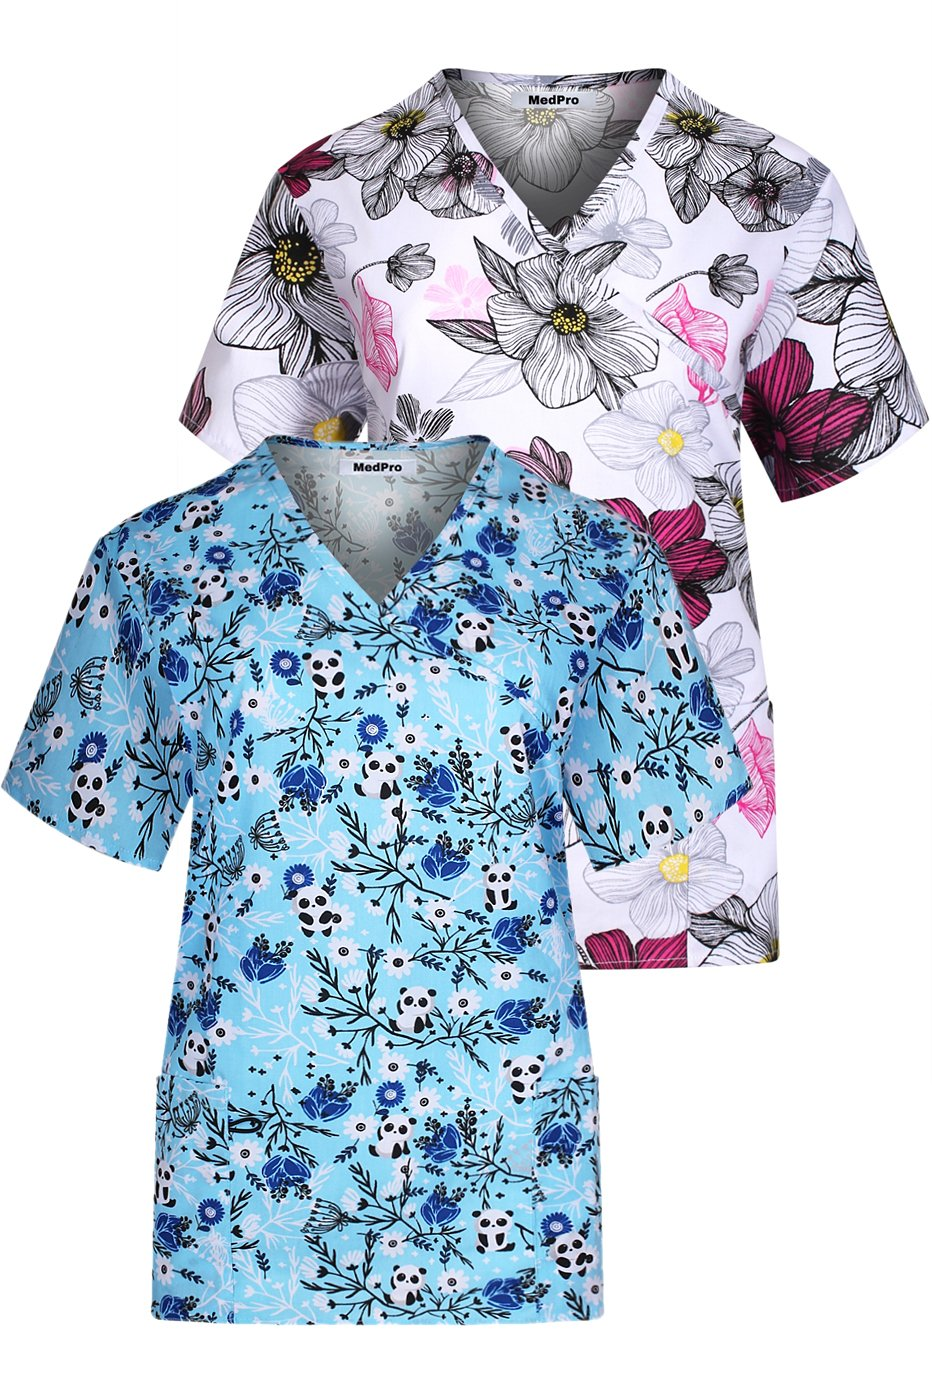 MedPro Women's Printed Mock Wrap Medical Scrub Top Multi Pack White Blue S by MedPro (Image #1)